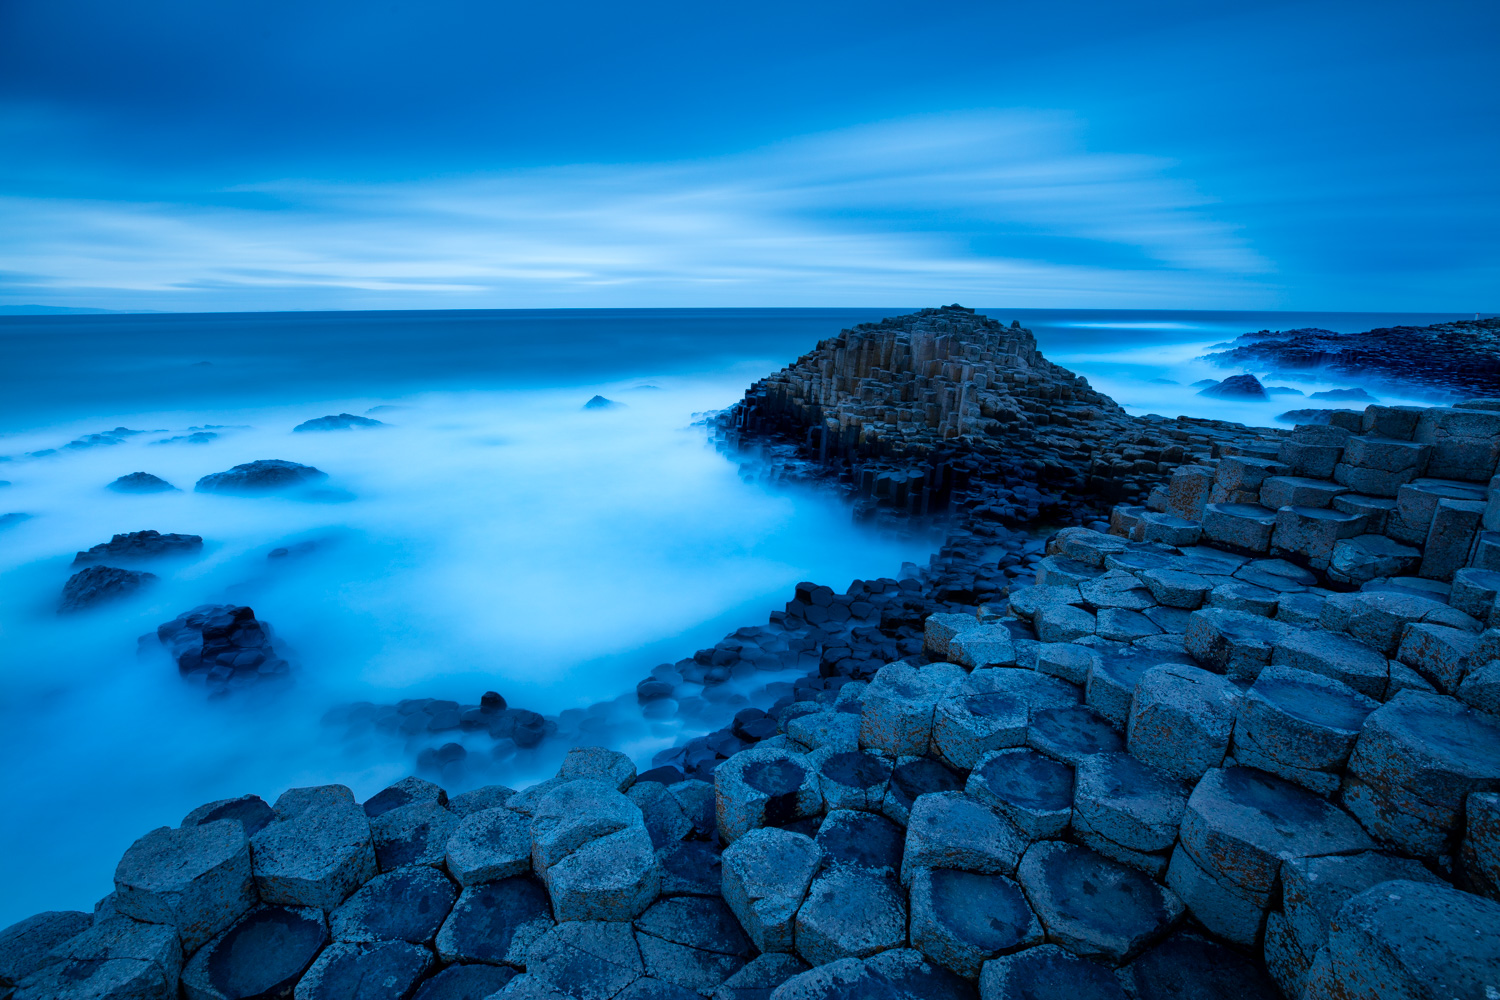 5 - 6 Ways to Capture Coastal Scenes to add Impact to Your Photos